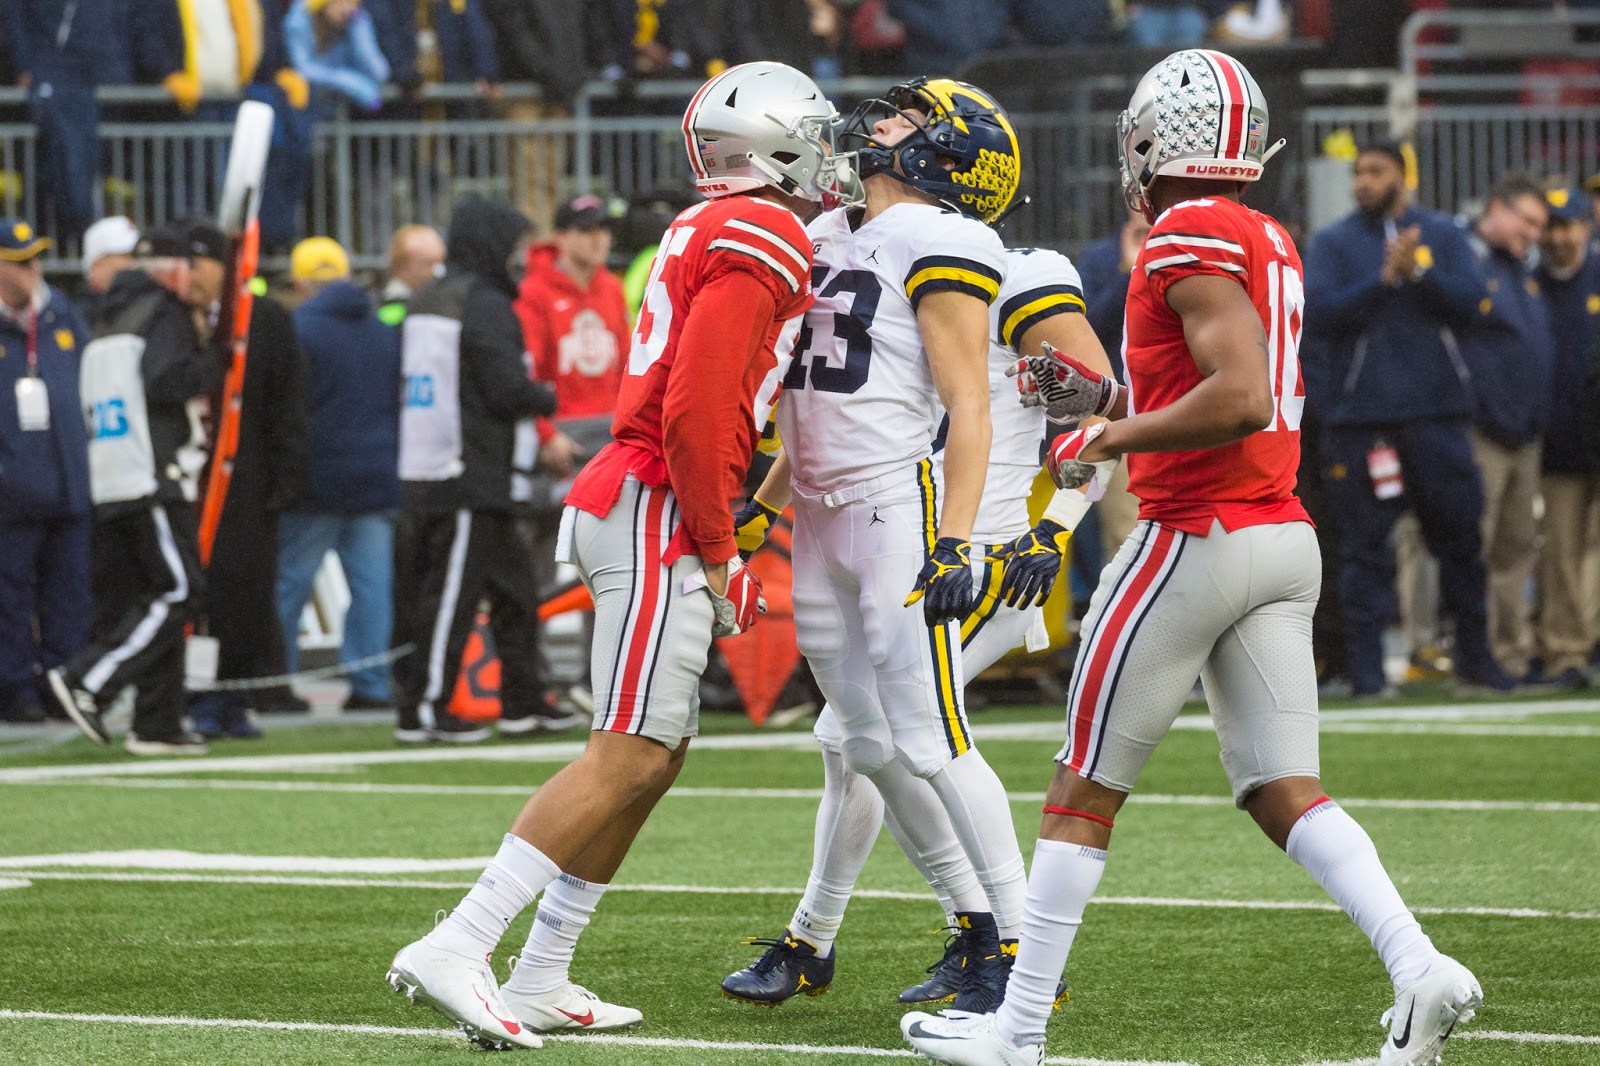 Michigan vs Ohio State 2018 Photos | Maize and Blue Nation